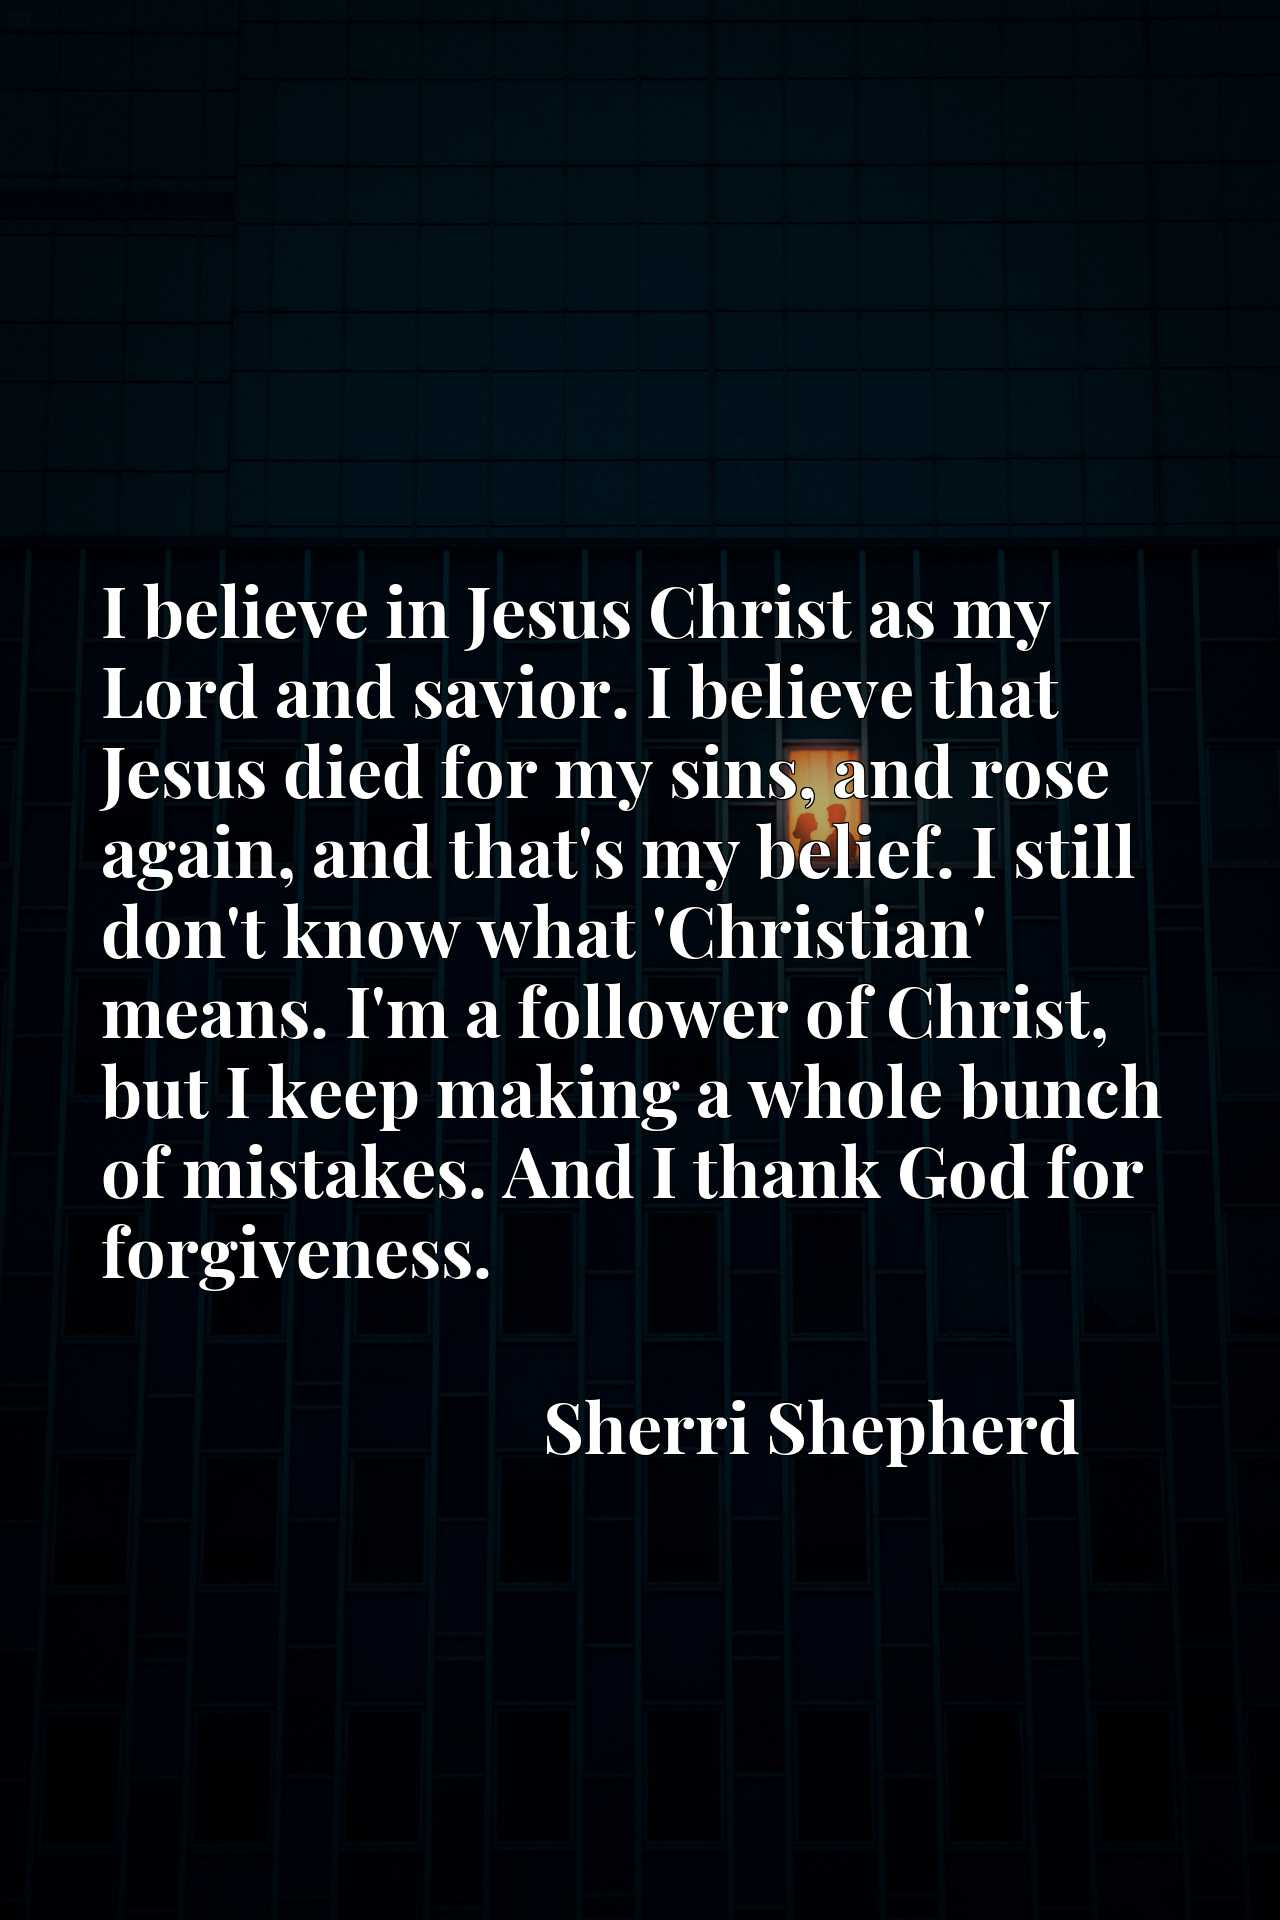 I believe in Jesus Christ as my Lord and savior. I believe that Jesus died for my sins, and rose again, and that's my belief. I still don't know what 'Christian' means. I'm a follower of Christ, but I keep making a whole bunch of mistakes. And I thank God for forgiveness.